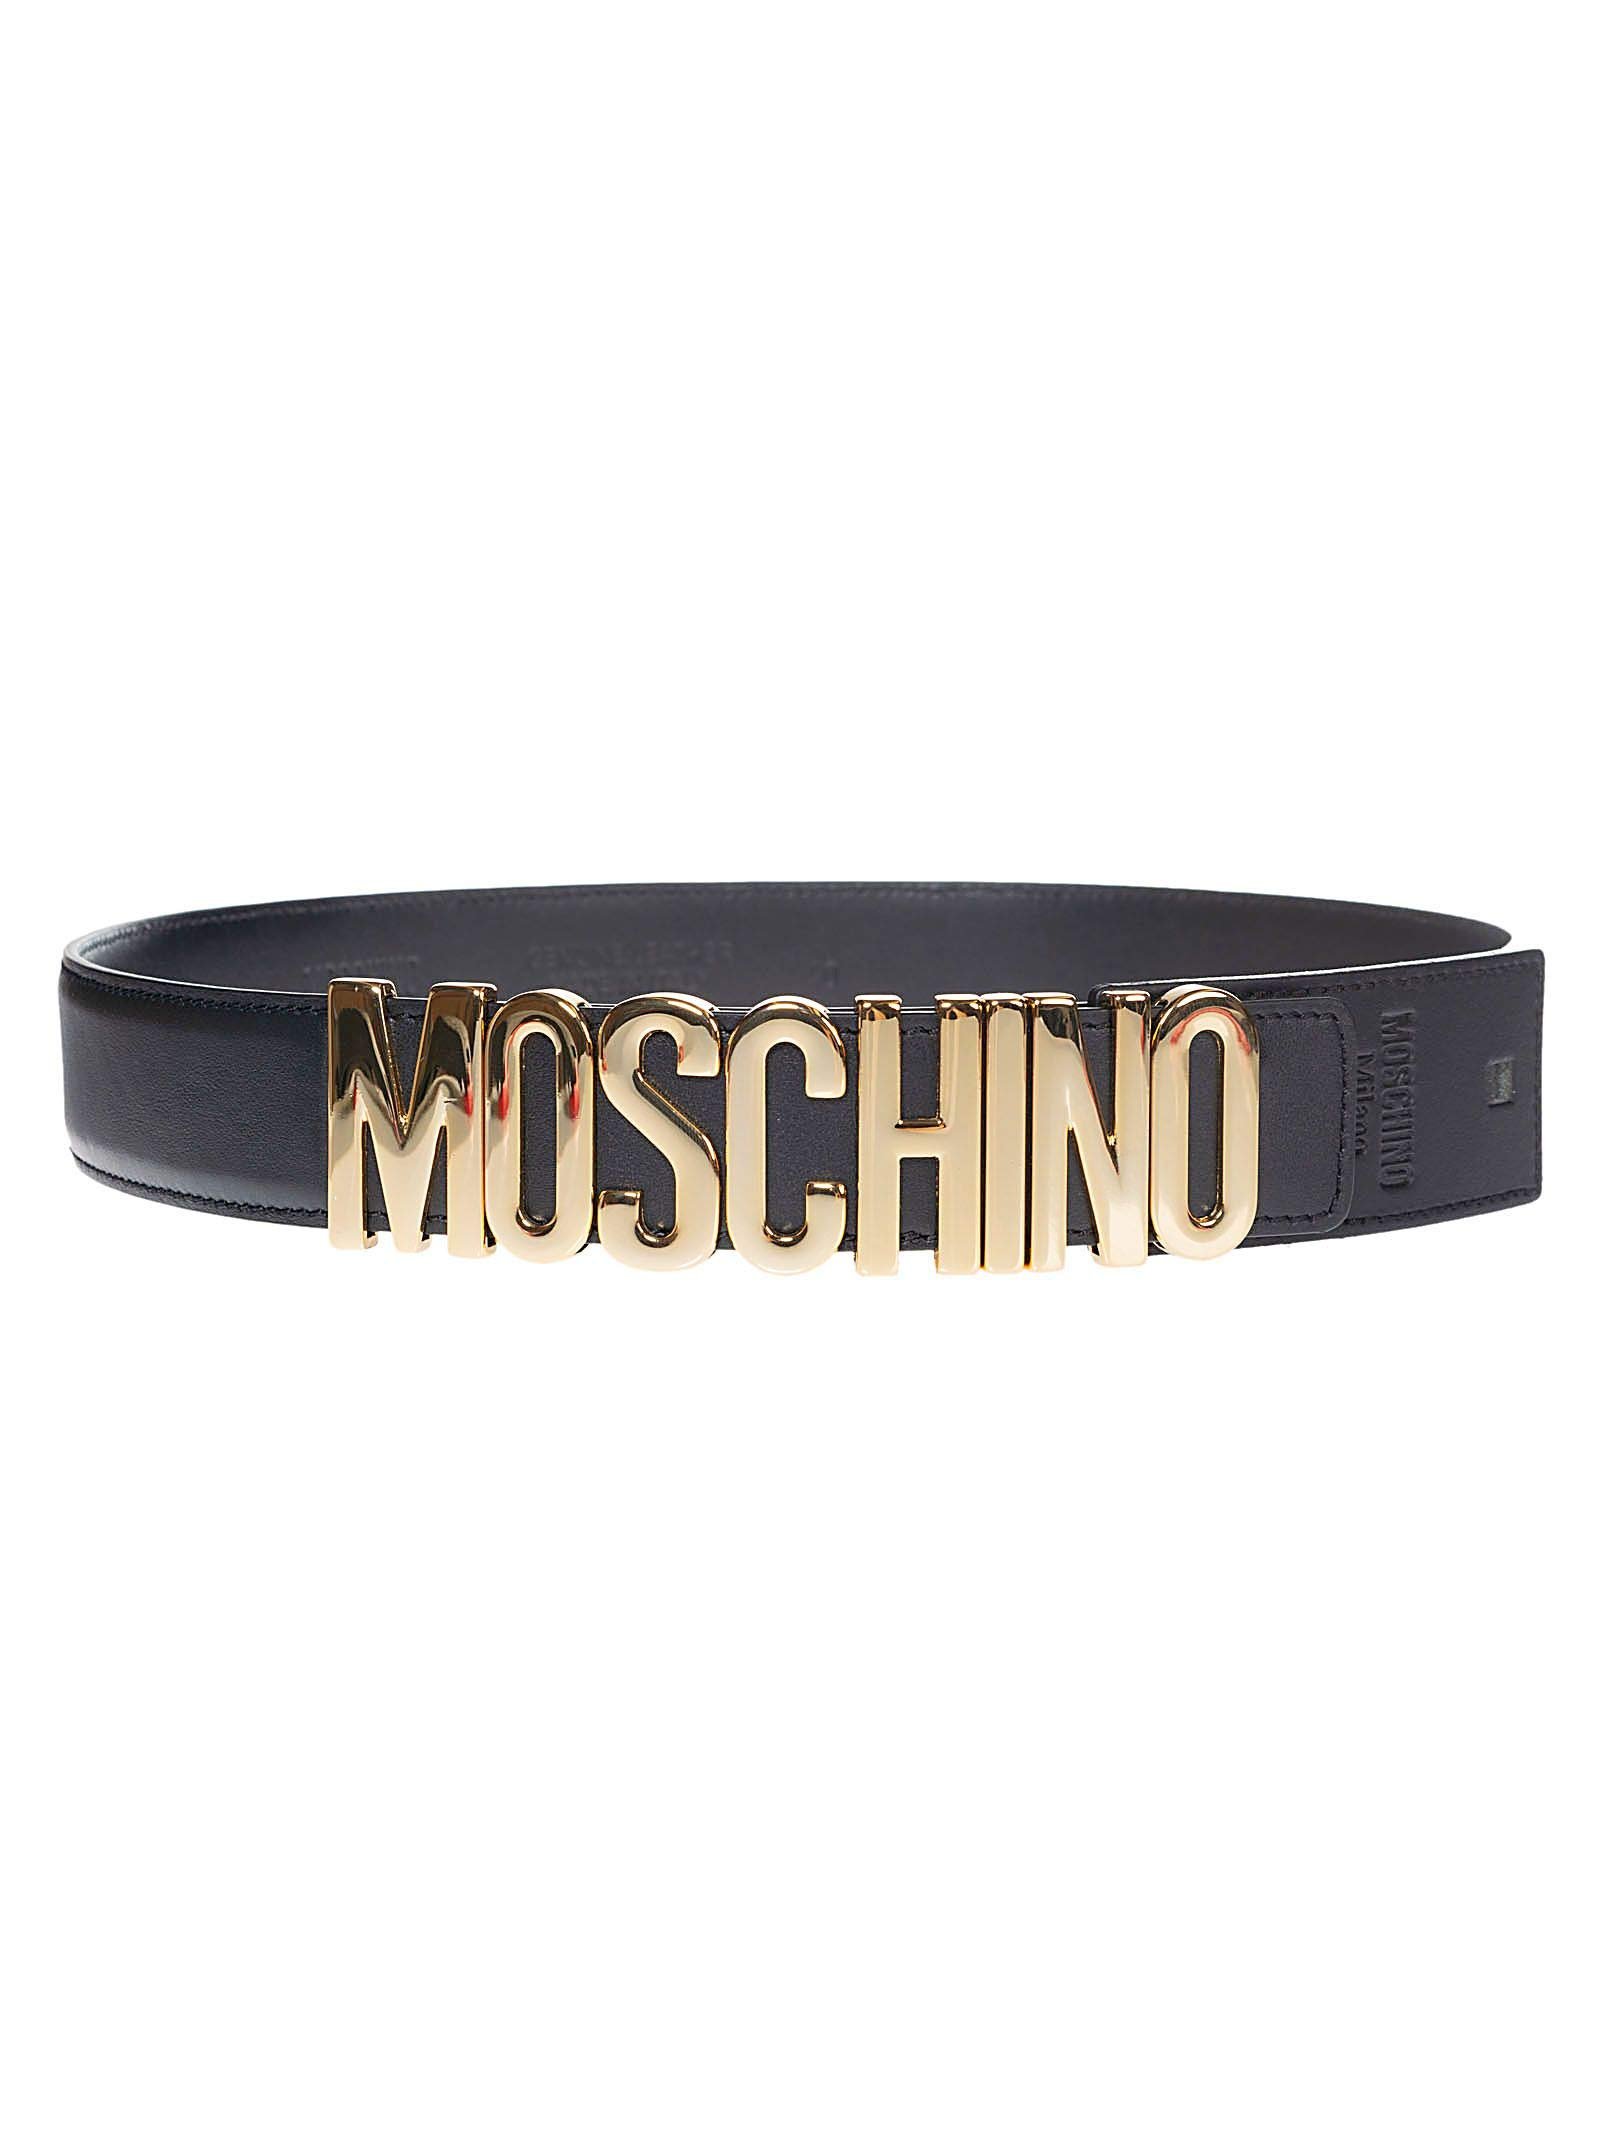 Moschino Women's A80078001555 Black Leather Belt